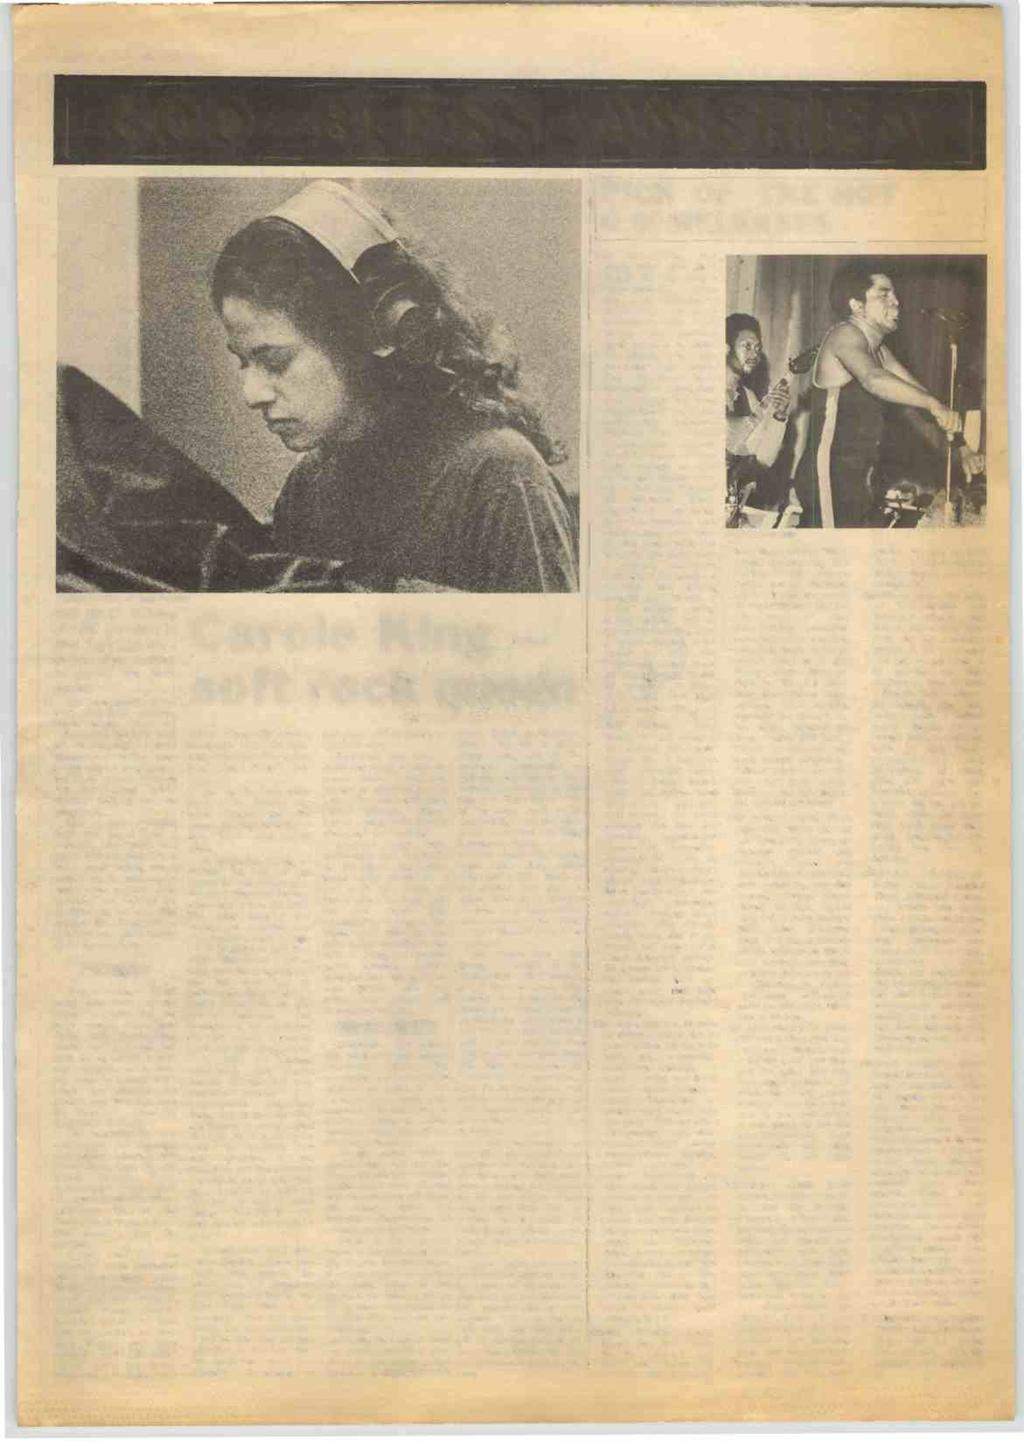 RECORD MIRROR, May 15, 1971 9 GOD BLESS AMERICA I CAROLE: IN BRITAIN SOON? THE BRILL Building at 1650 Broadway in New York City was a strange place to work in during the early sixties.